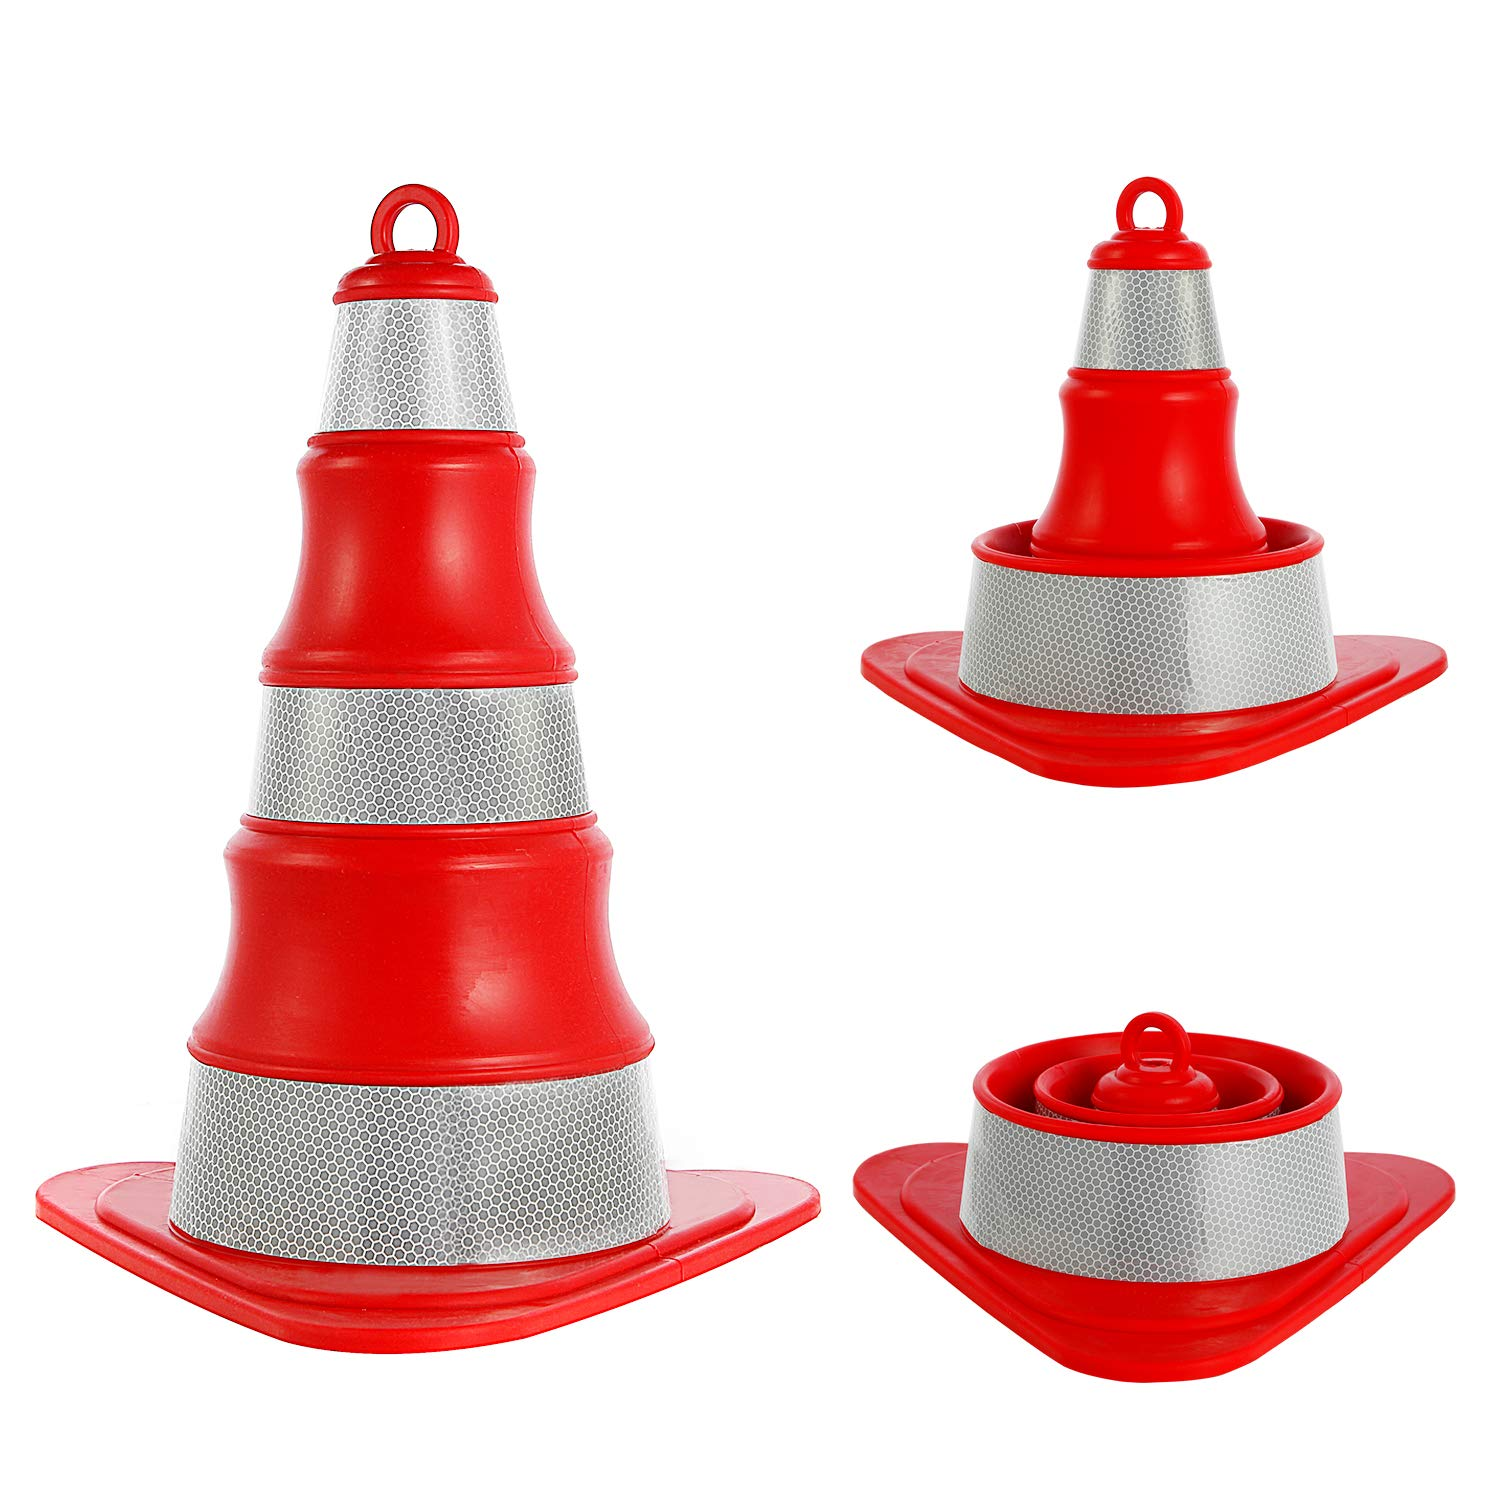 Safety Traffic Cones Collapsible and Reflective Construction Cone Stands Up to The Challenges of Adverse Weather or Road Conditions